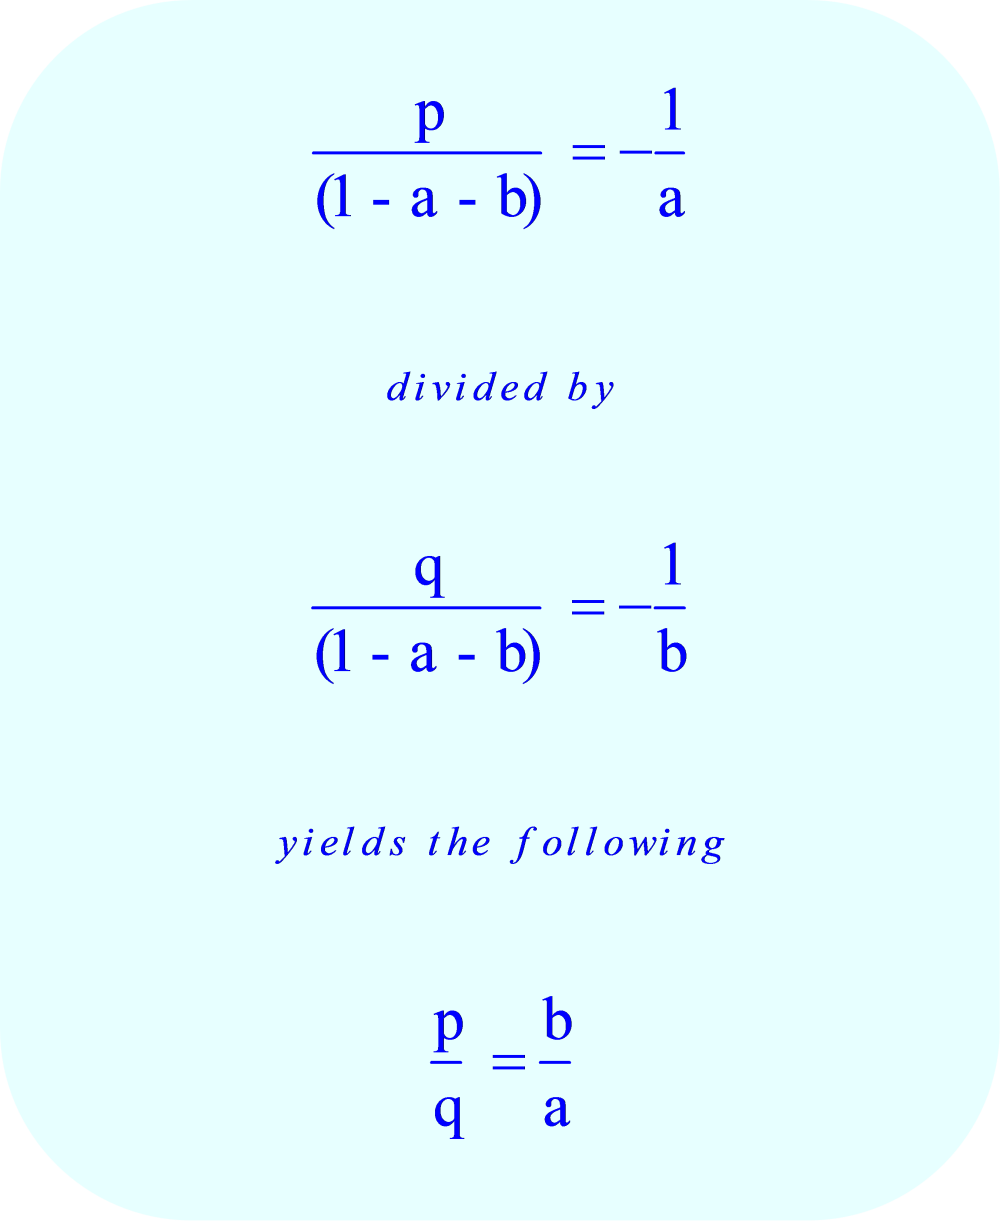 dividing the result of differentiating by x with the result of differentiating by y